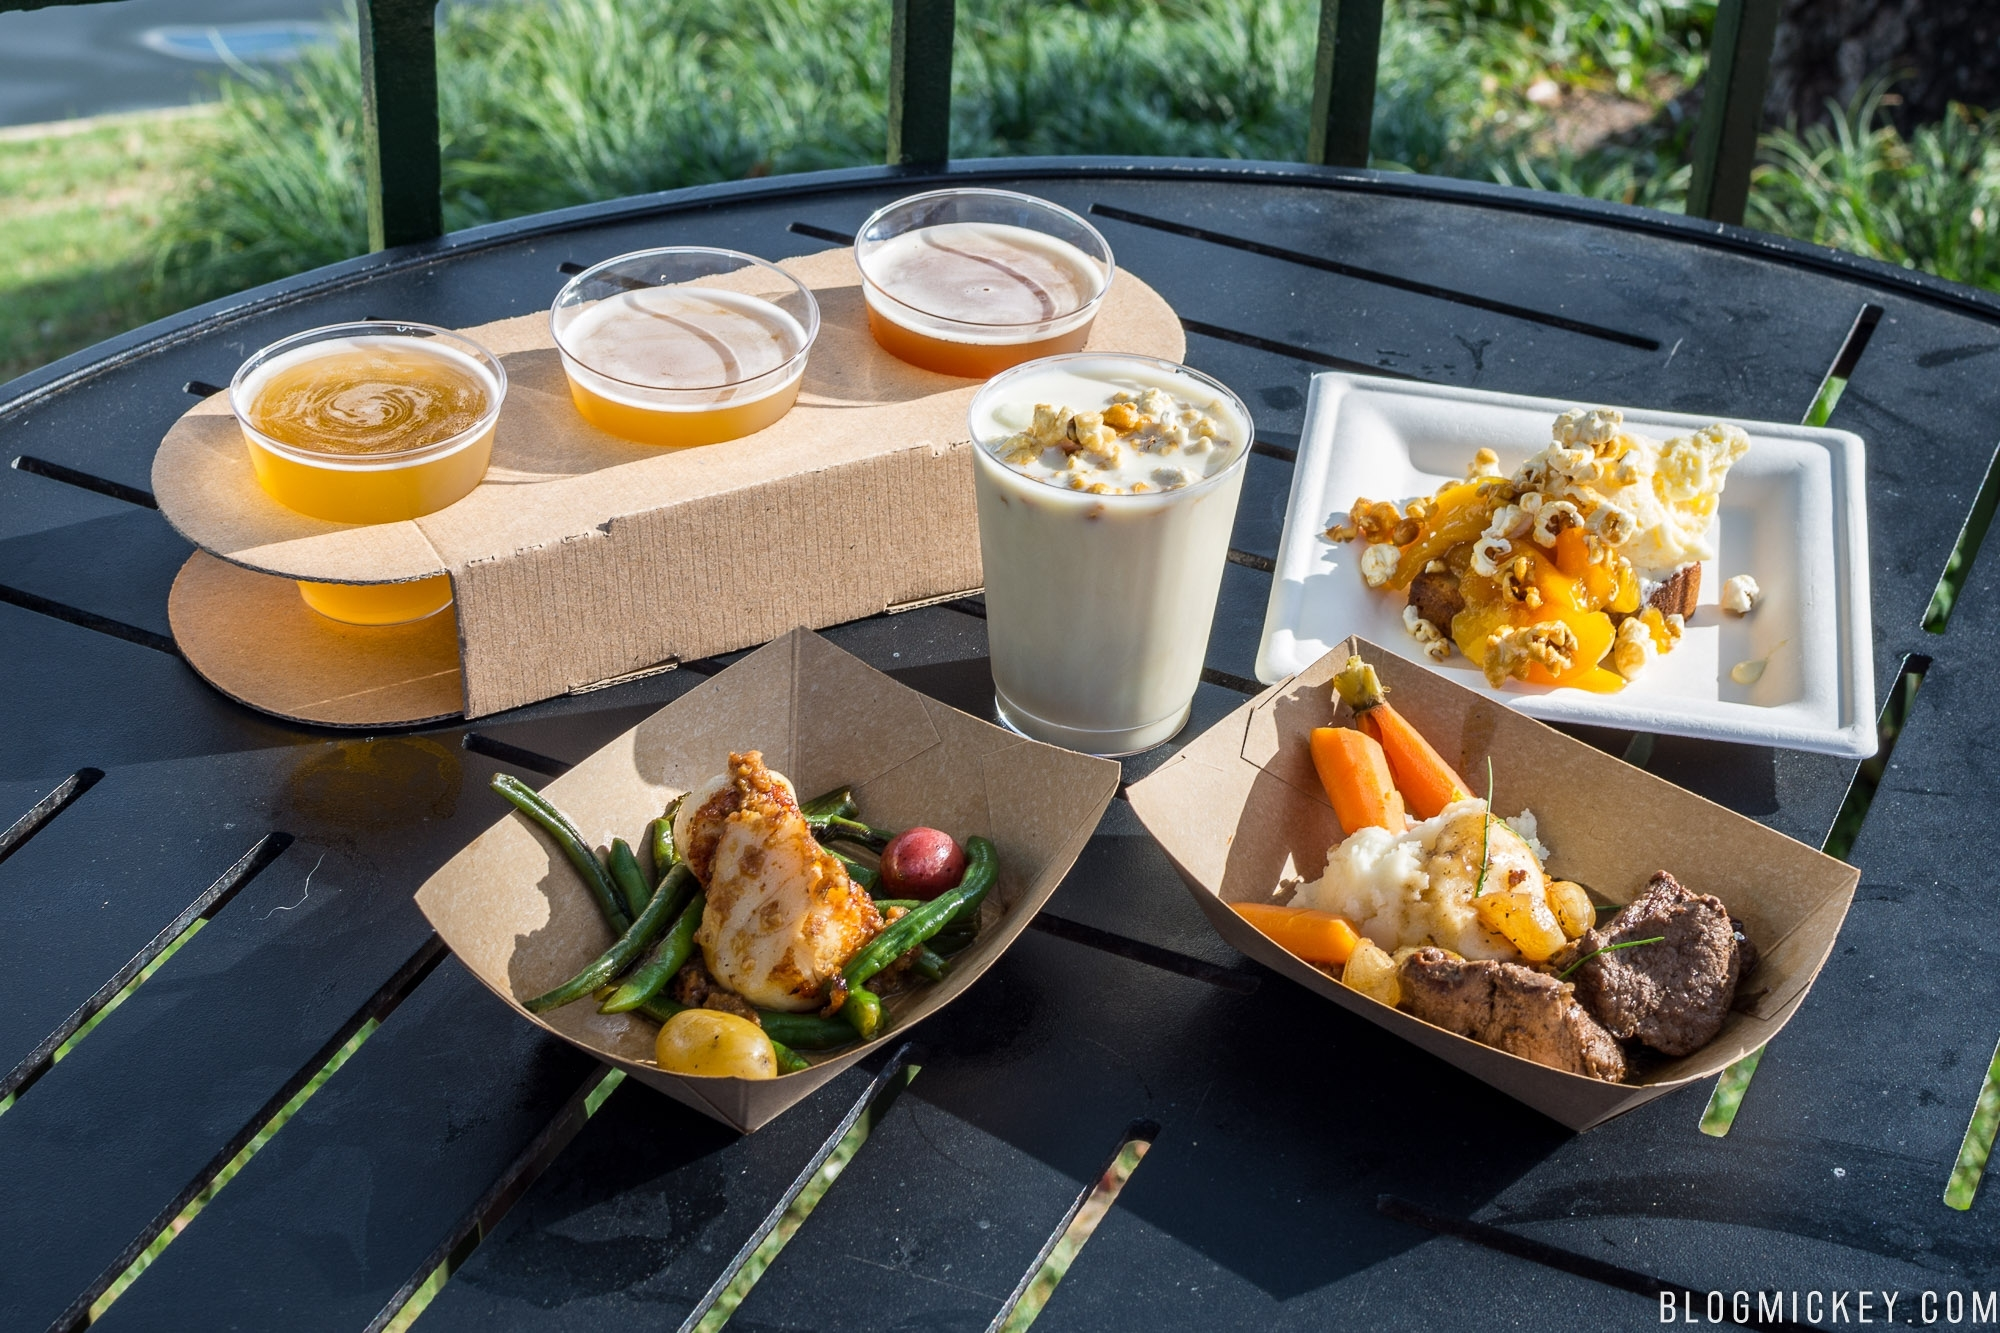 Review: Northern Bloom - 2018 Epcot Flower And Garden Festival intended for Flower And Garden Festival Food Reviews